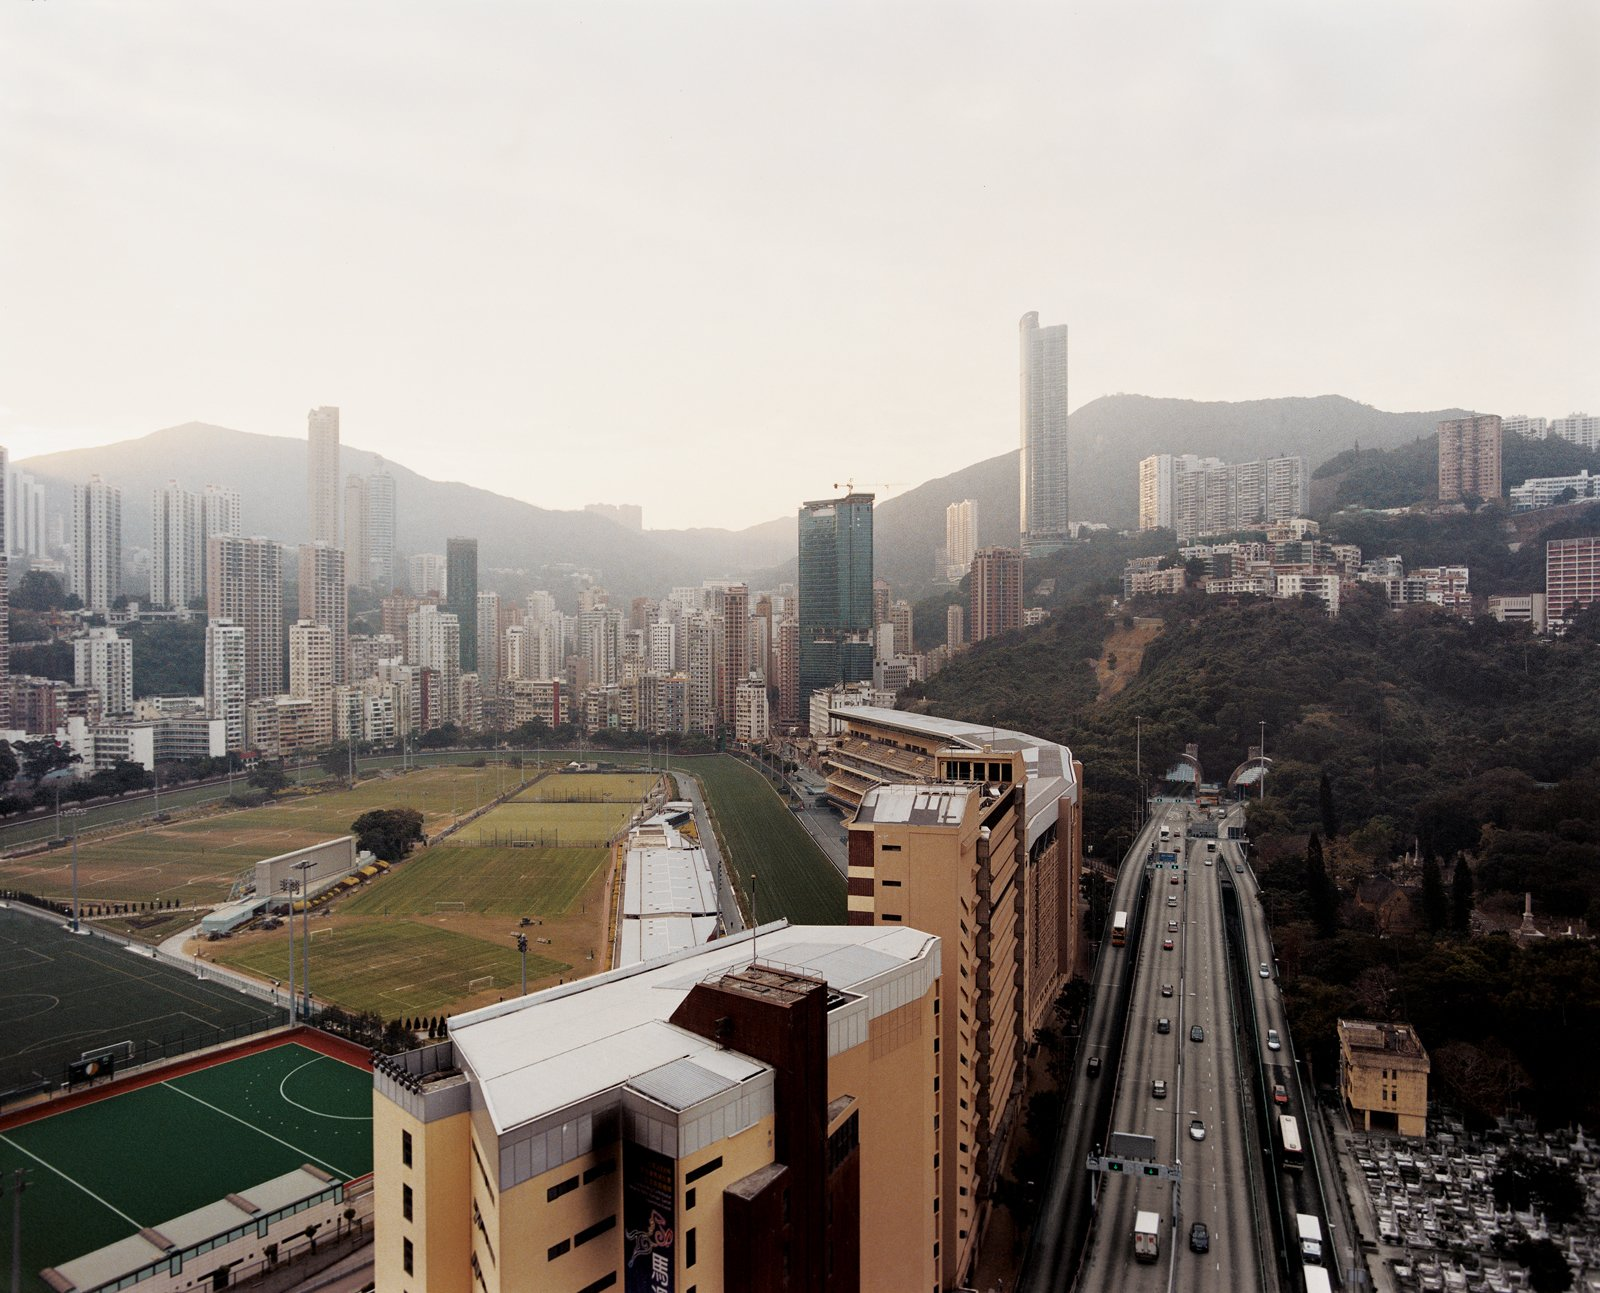 Nestled amidst the high-rises and road-ways of Hong Kong Island's Causeway Bay   district, the Happy Valley Racecourse is one of two tracks that see billions of dollars   wagered each season. Hong Kong's first official horse race was held on this site in 1846.  Photo 1 of 13 in Hong Kong, China